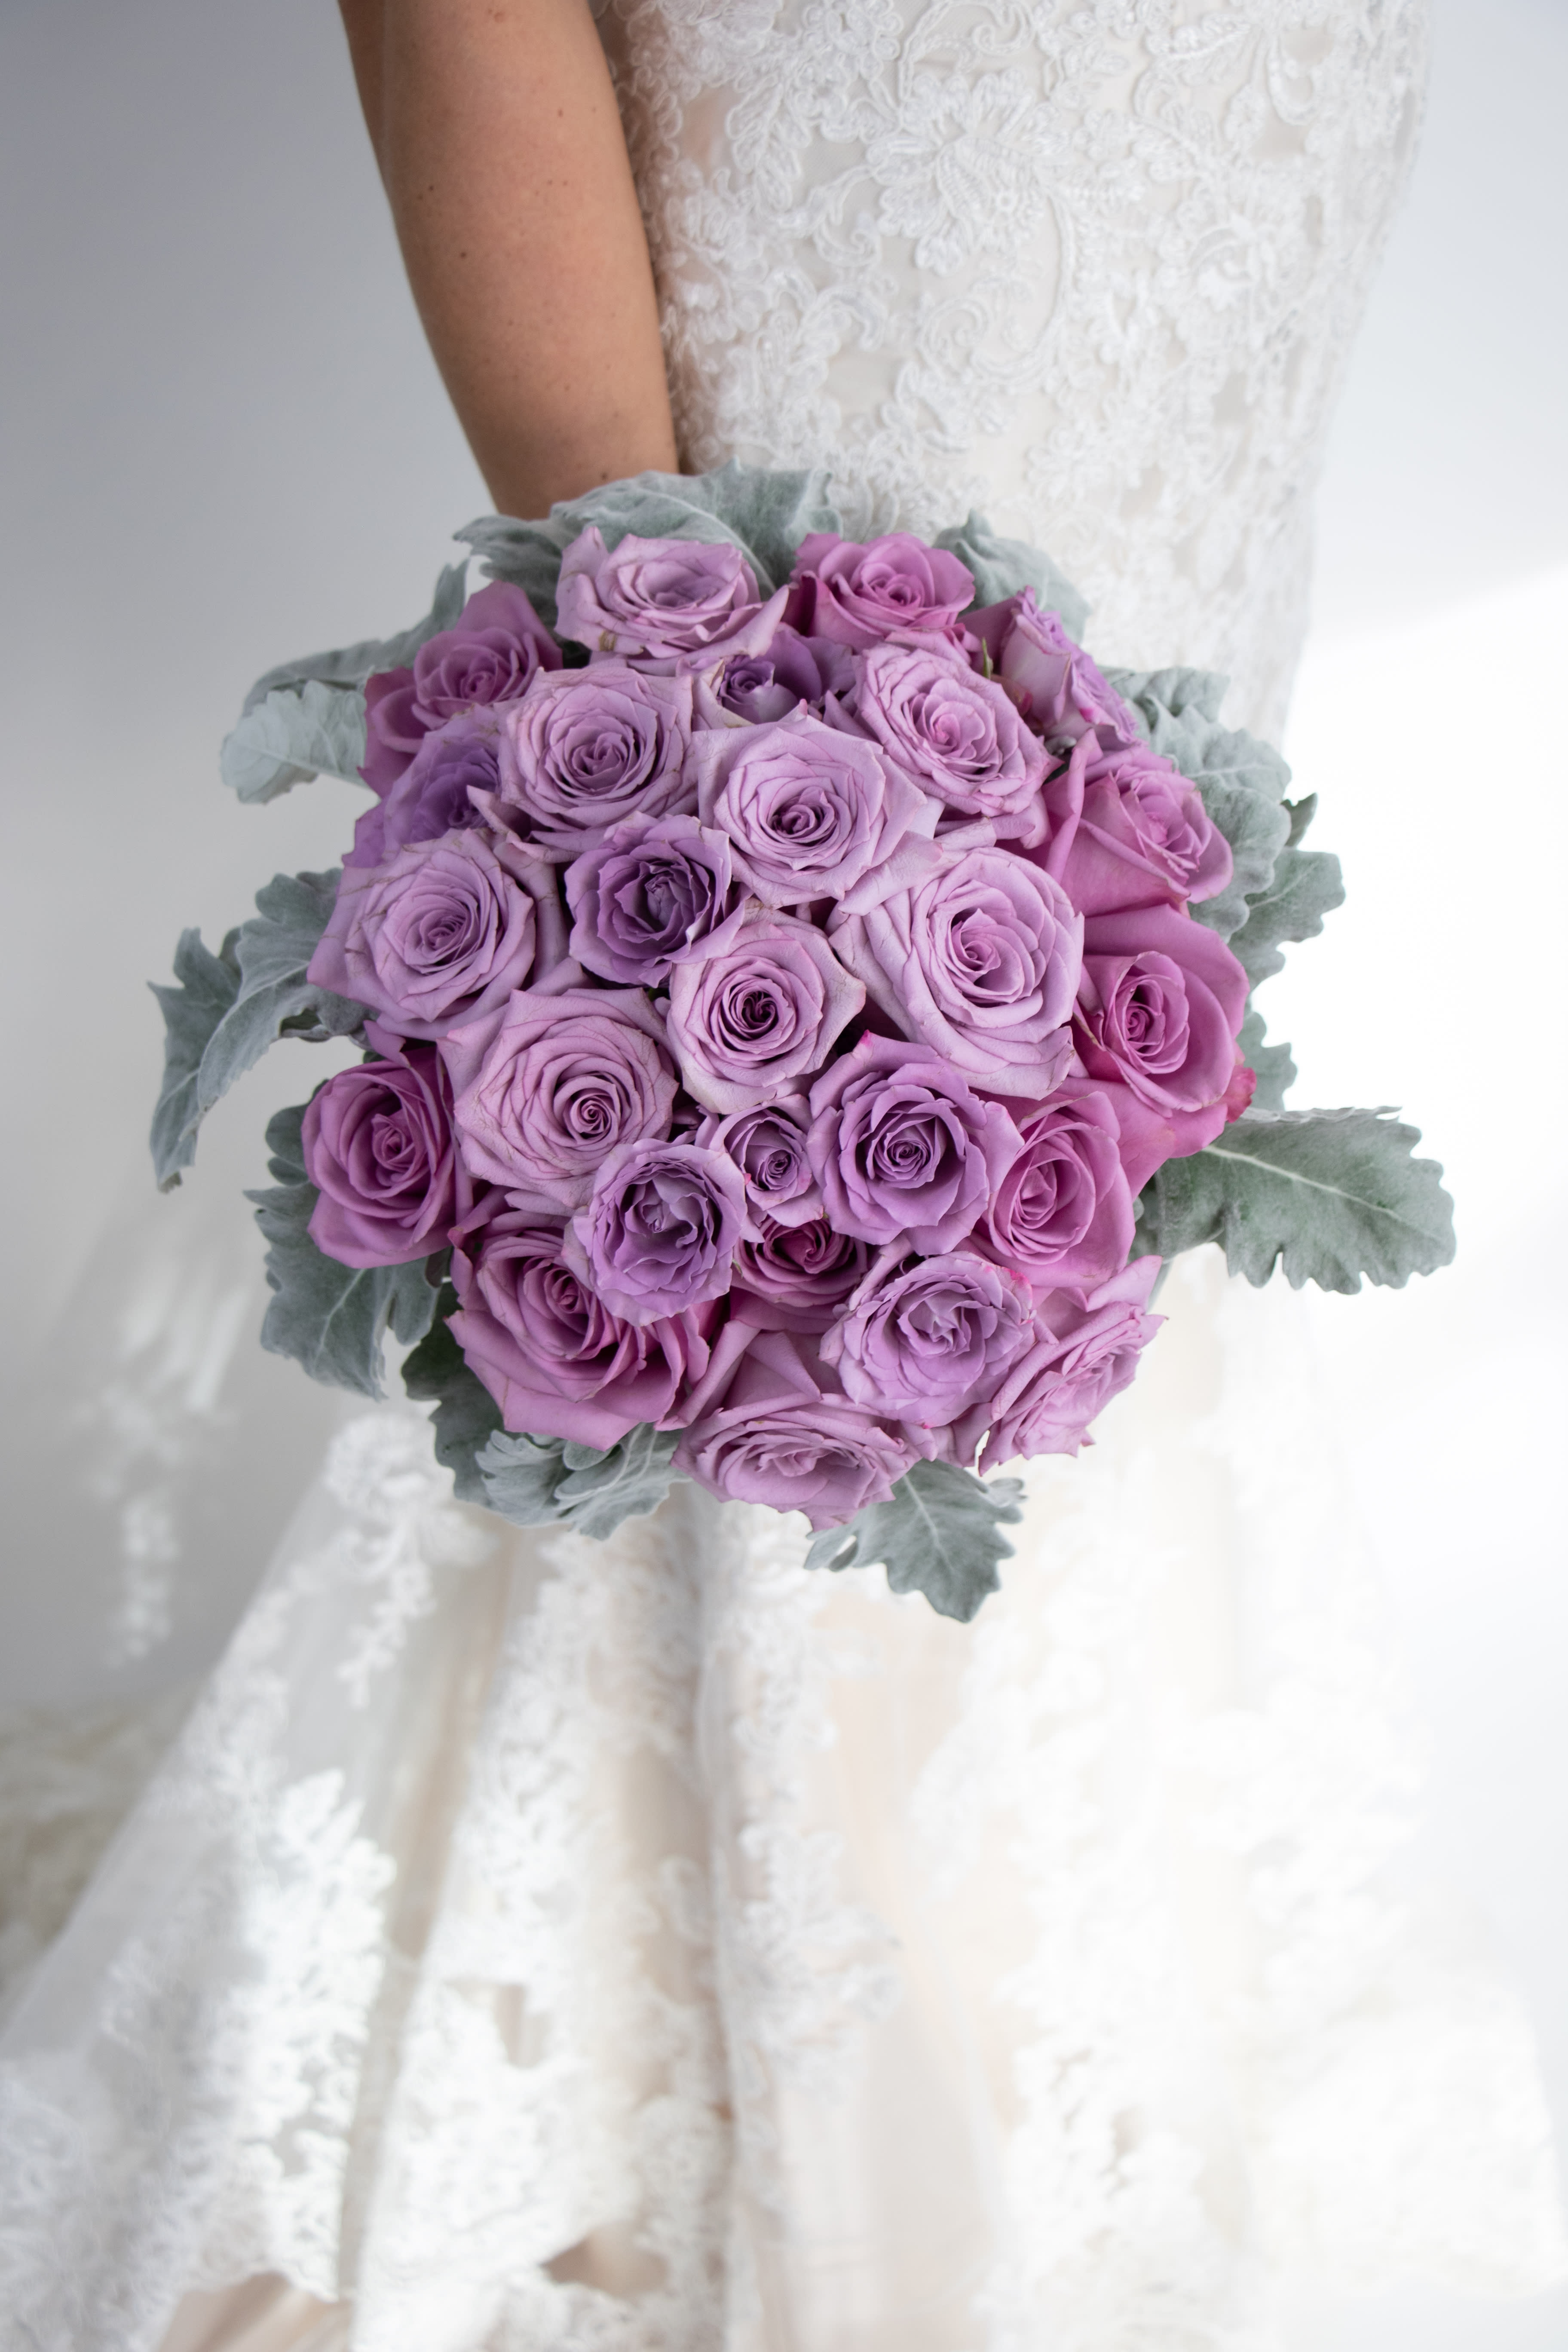 Eyes on You (1 to 3) Wedding Package in Bensalem, PA